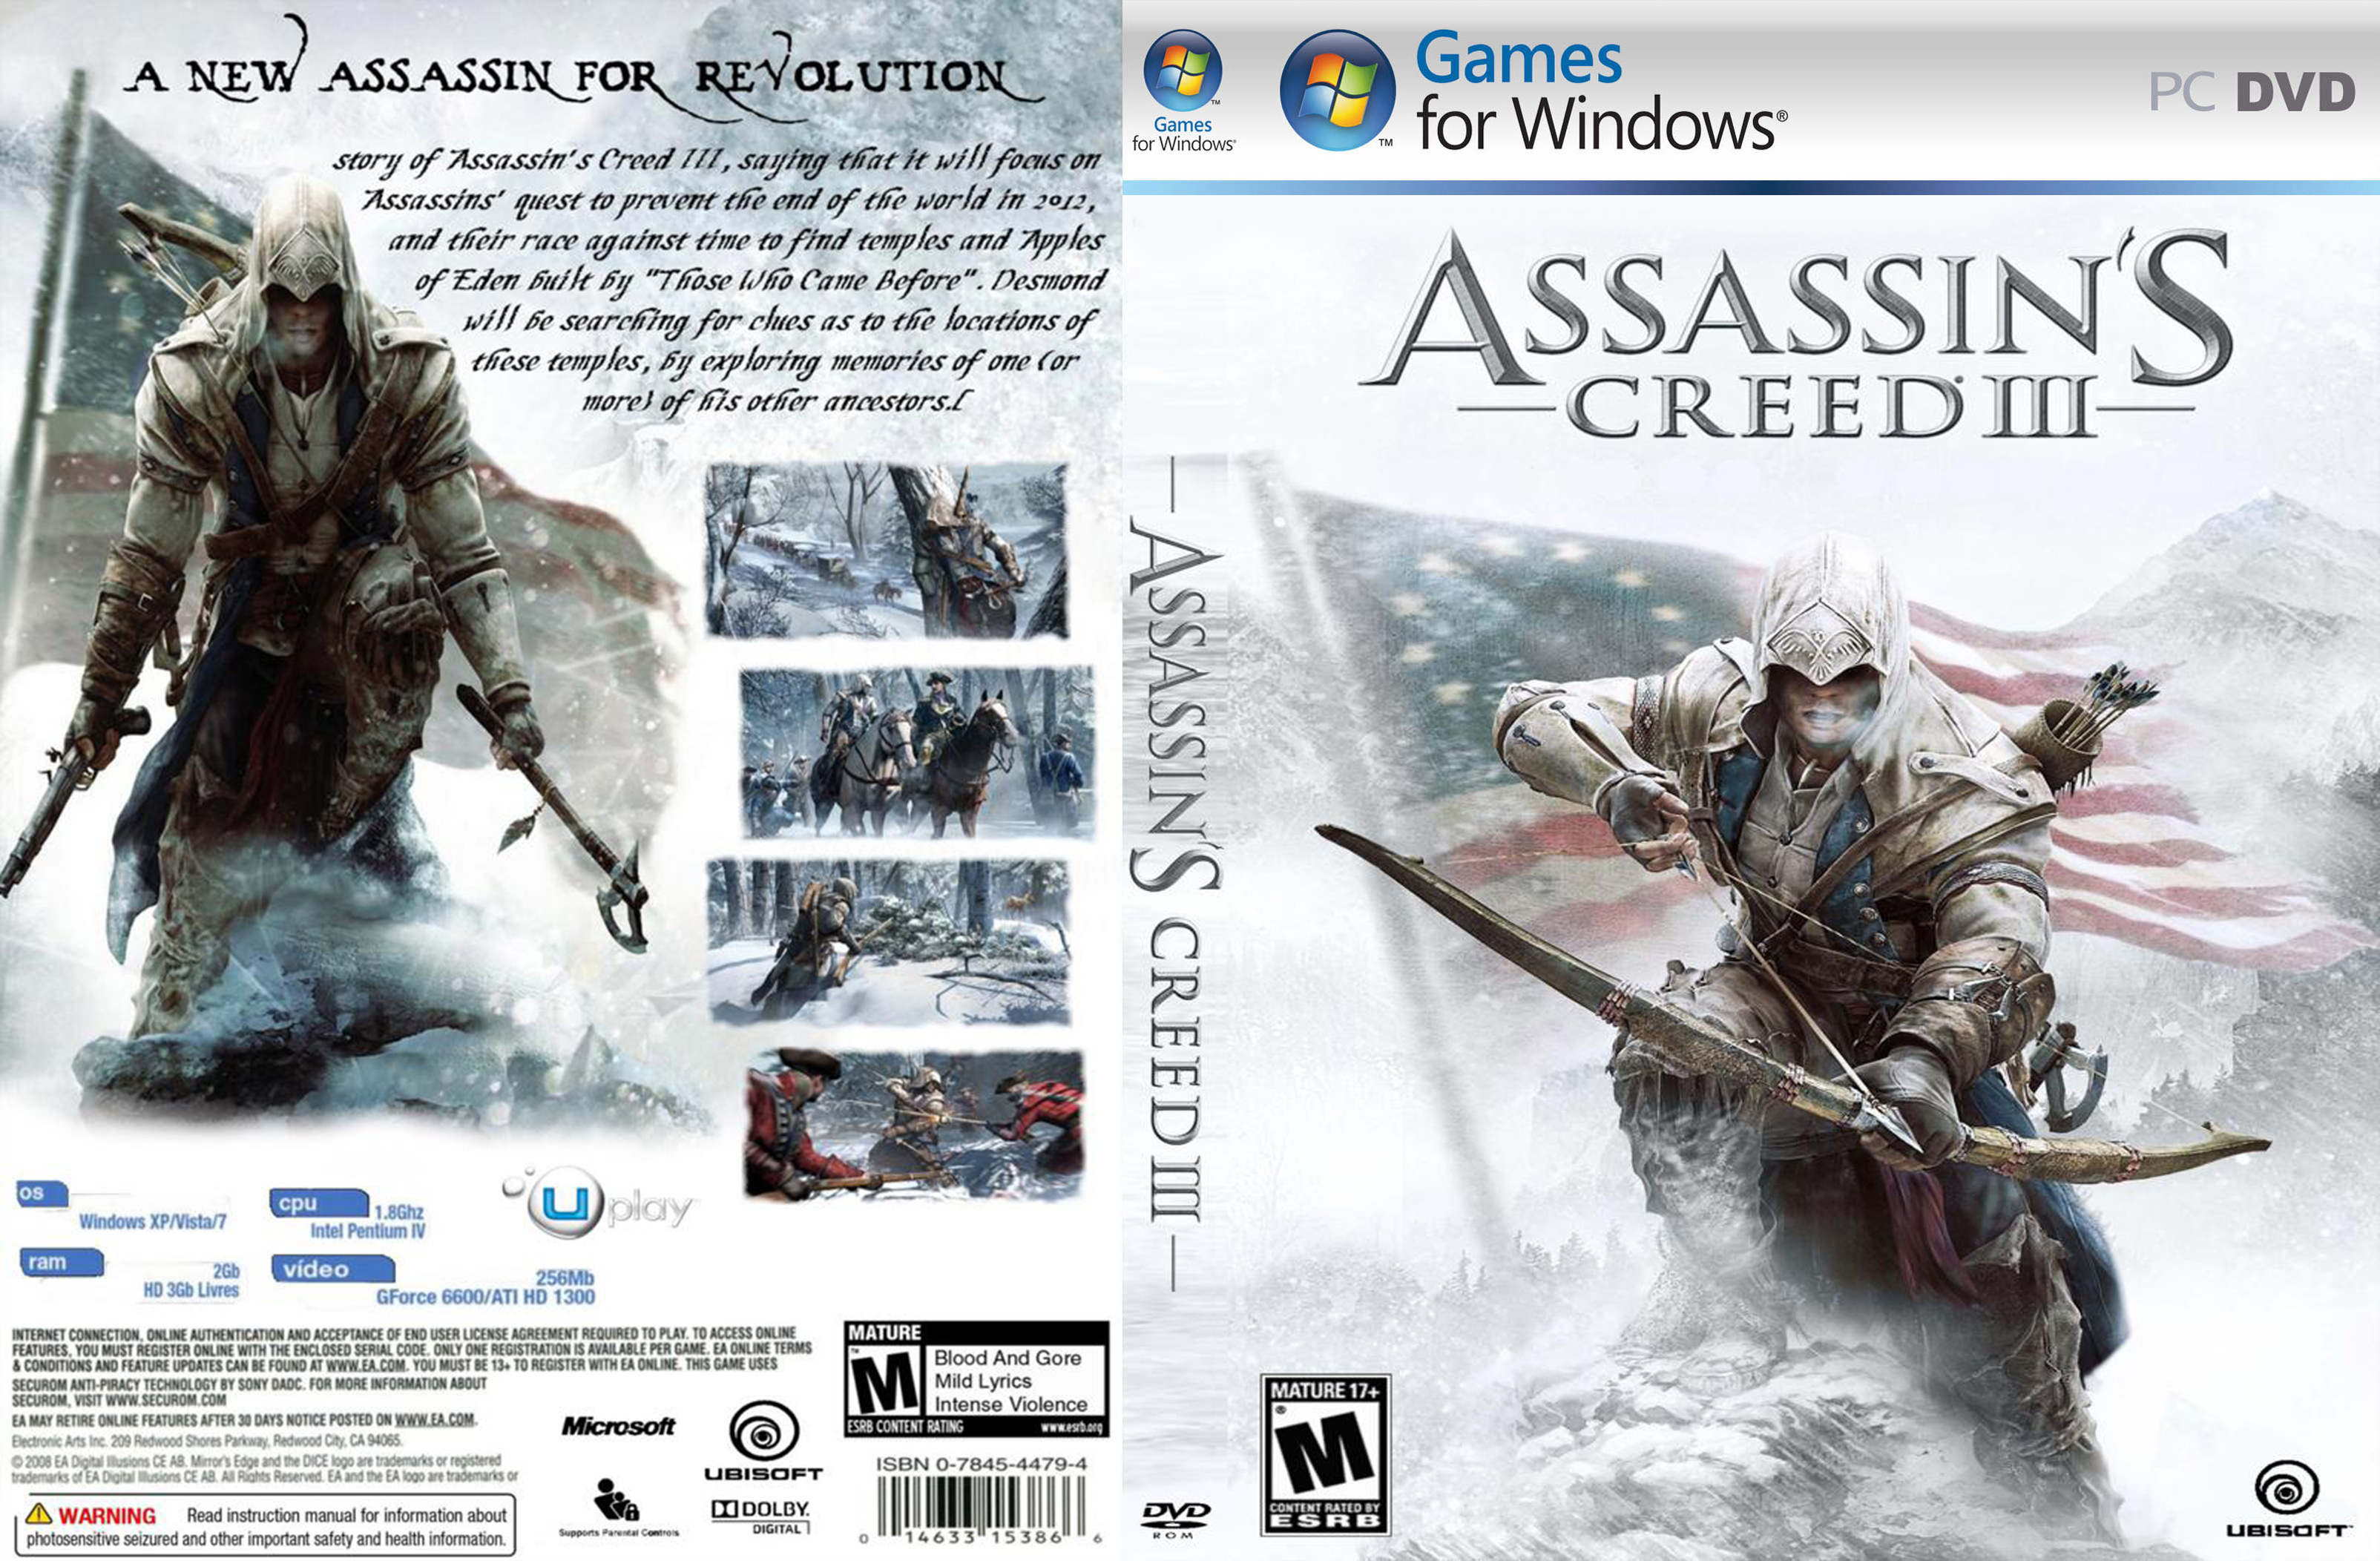 Assassins Creed 3 Multi7 Cracked-P2PSC Posted by Makawy in Search for Assas